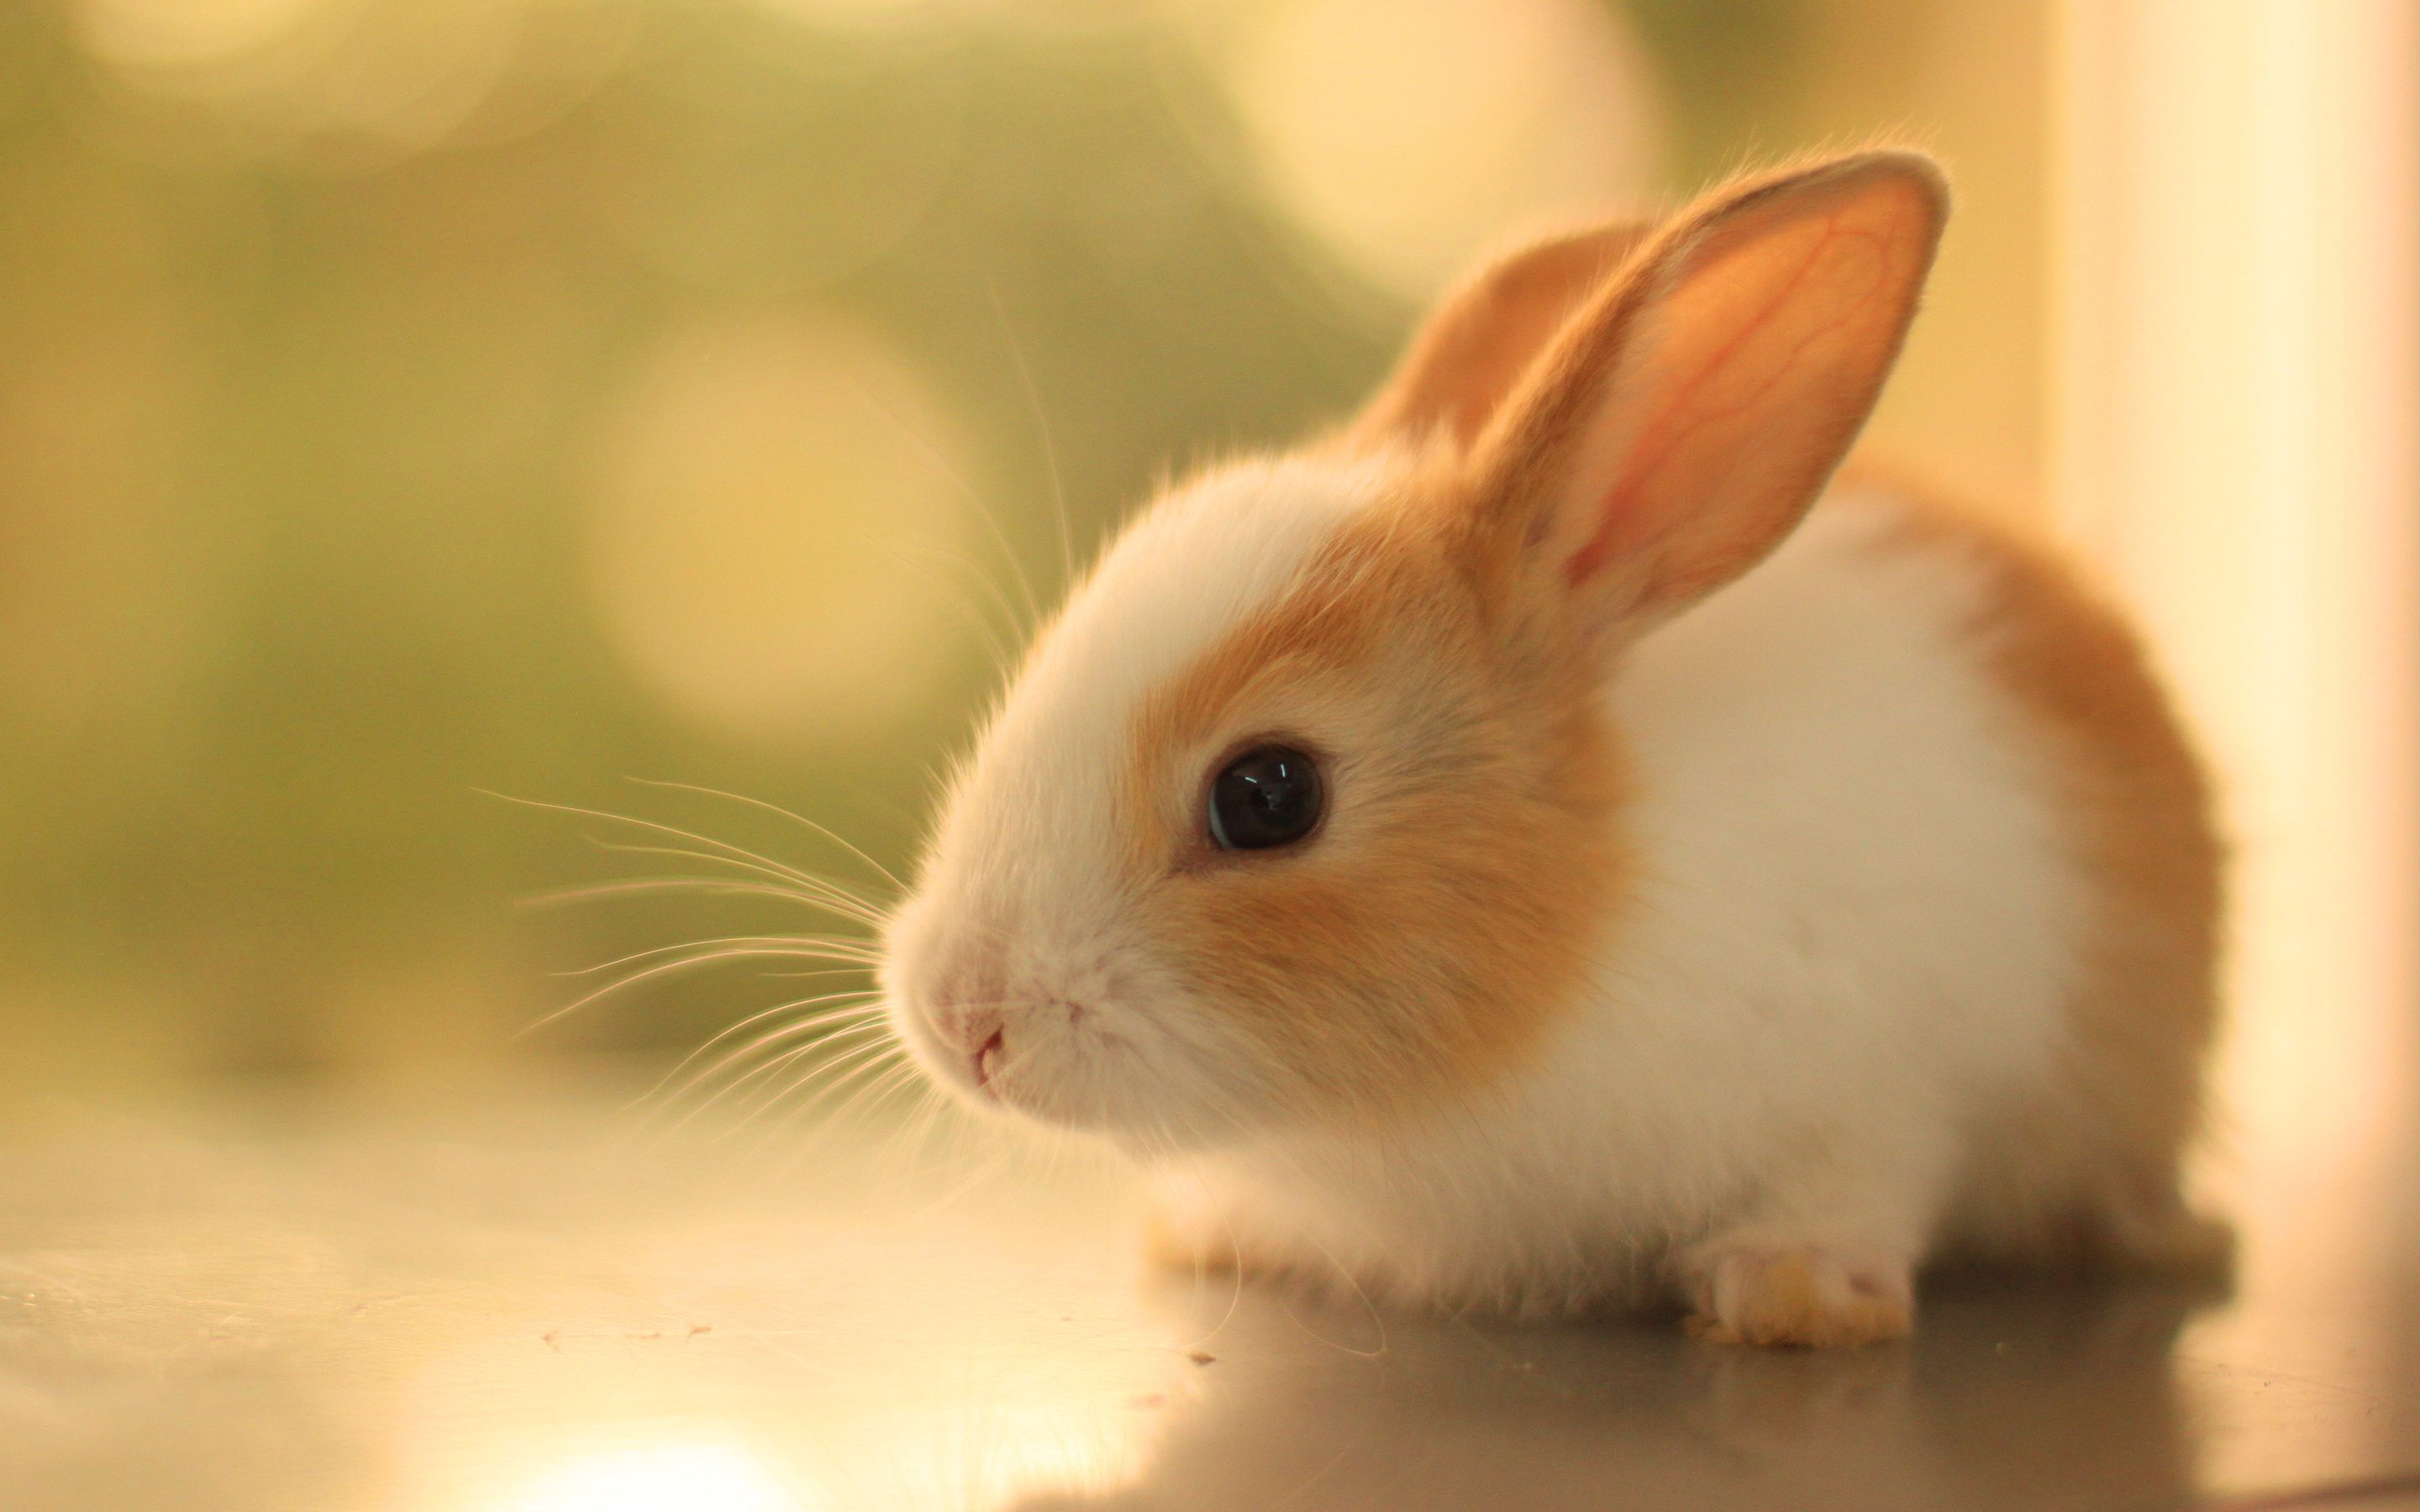 Baby Bunny Wallpapers Top Free Baby Bunny Backgrounds Wallpaperaccess